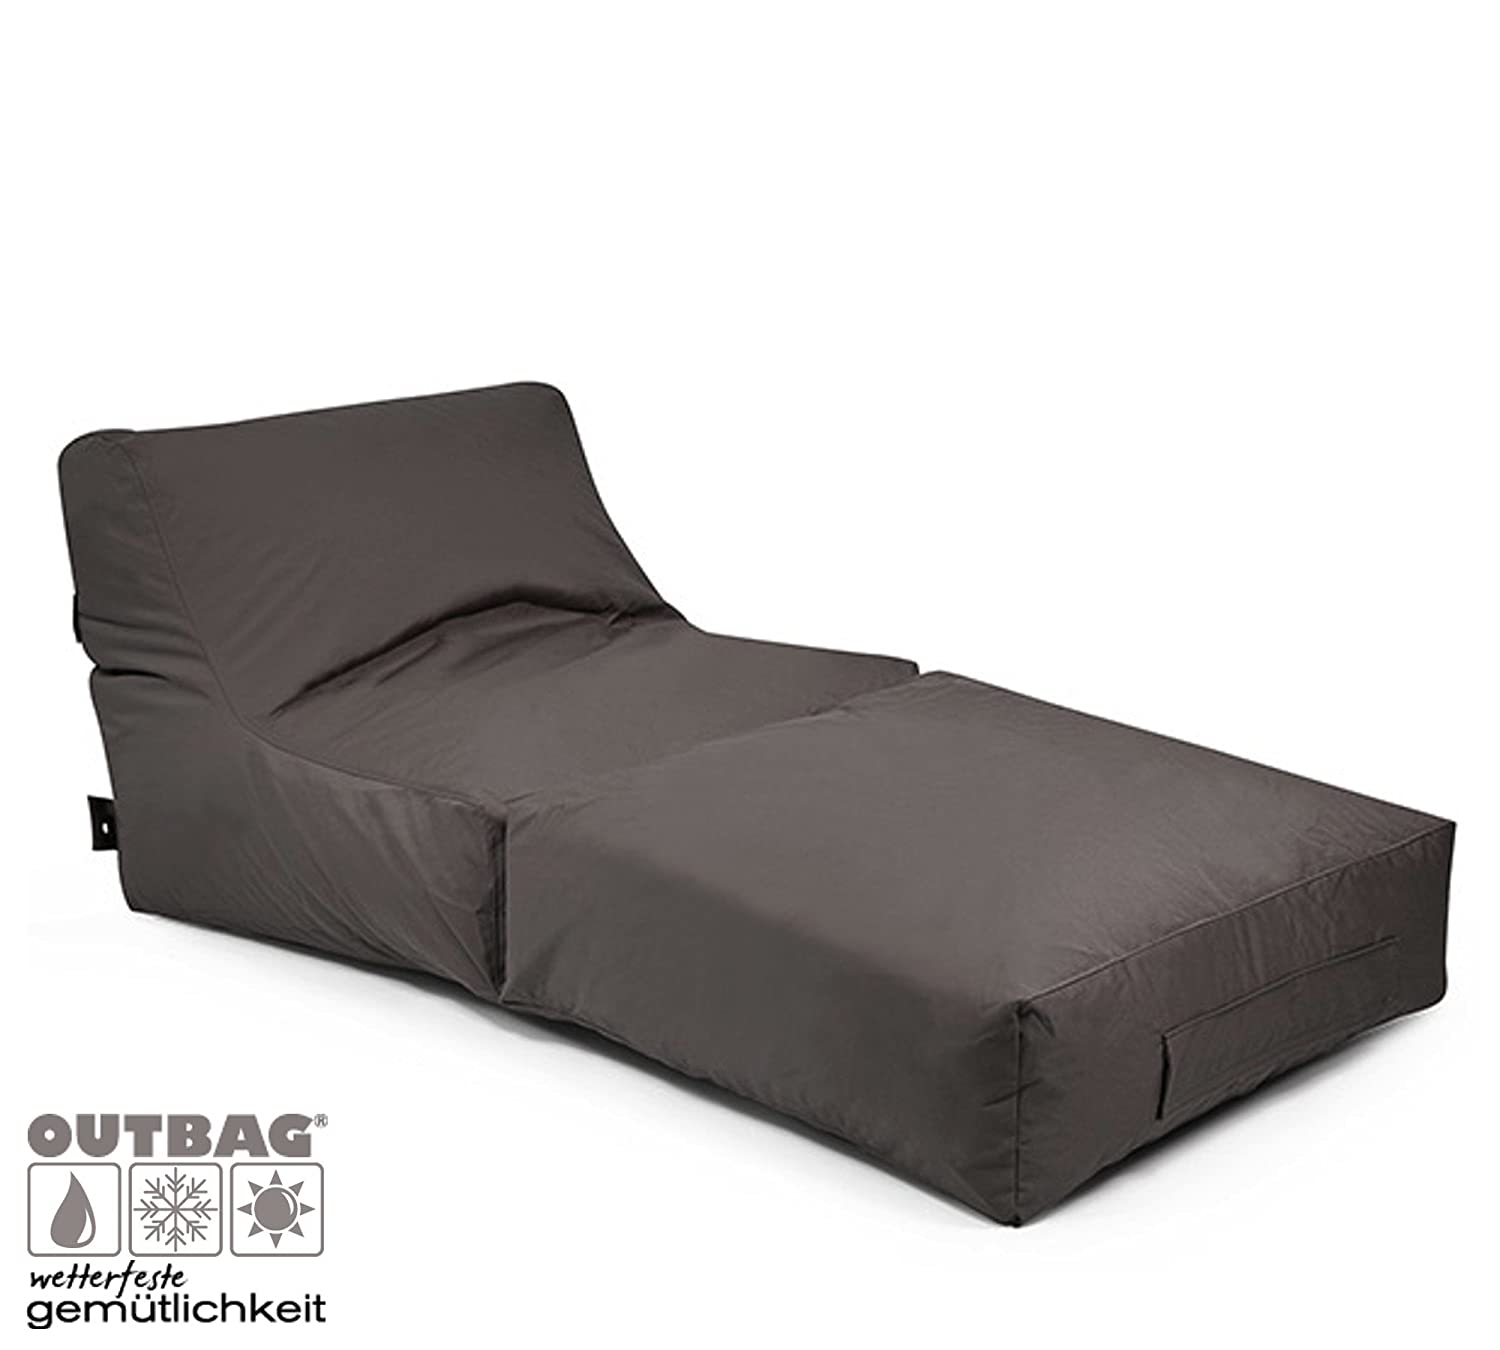 outbag outdoor sitzsack liege peak plus anthrazit online kaufen. Black Bedroom Furniture Sets. Home Design Ideas